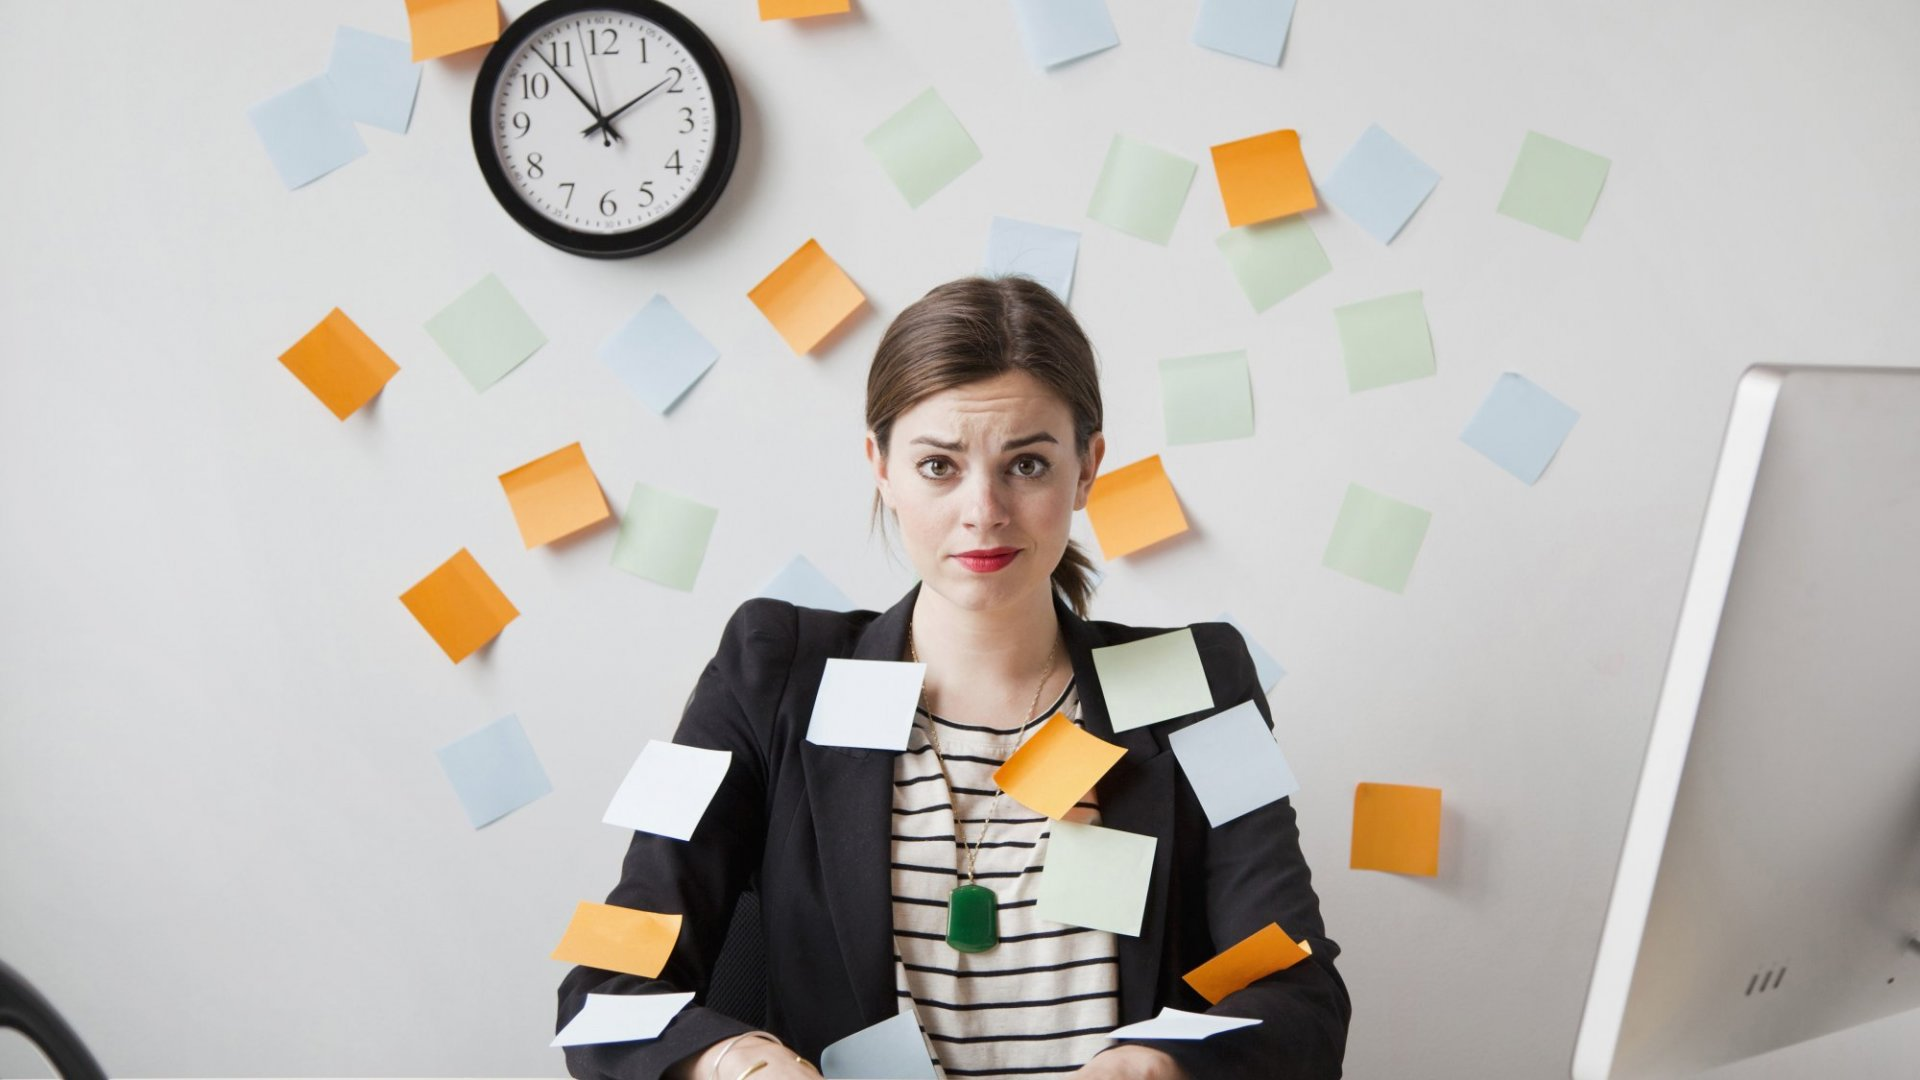 3 Terrible Reasons Why You Are Addicted to Busyness